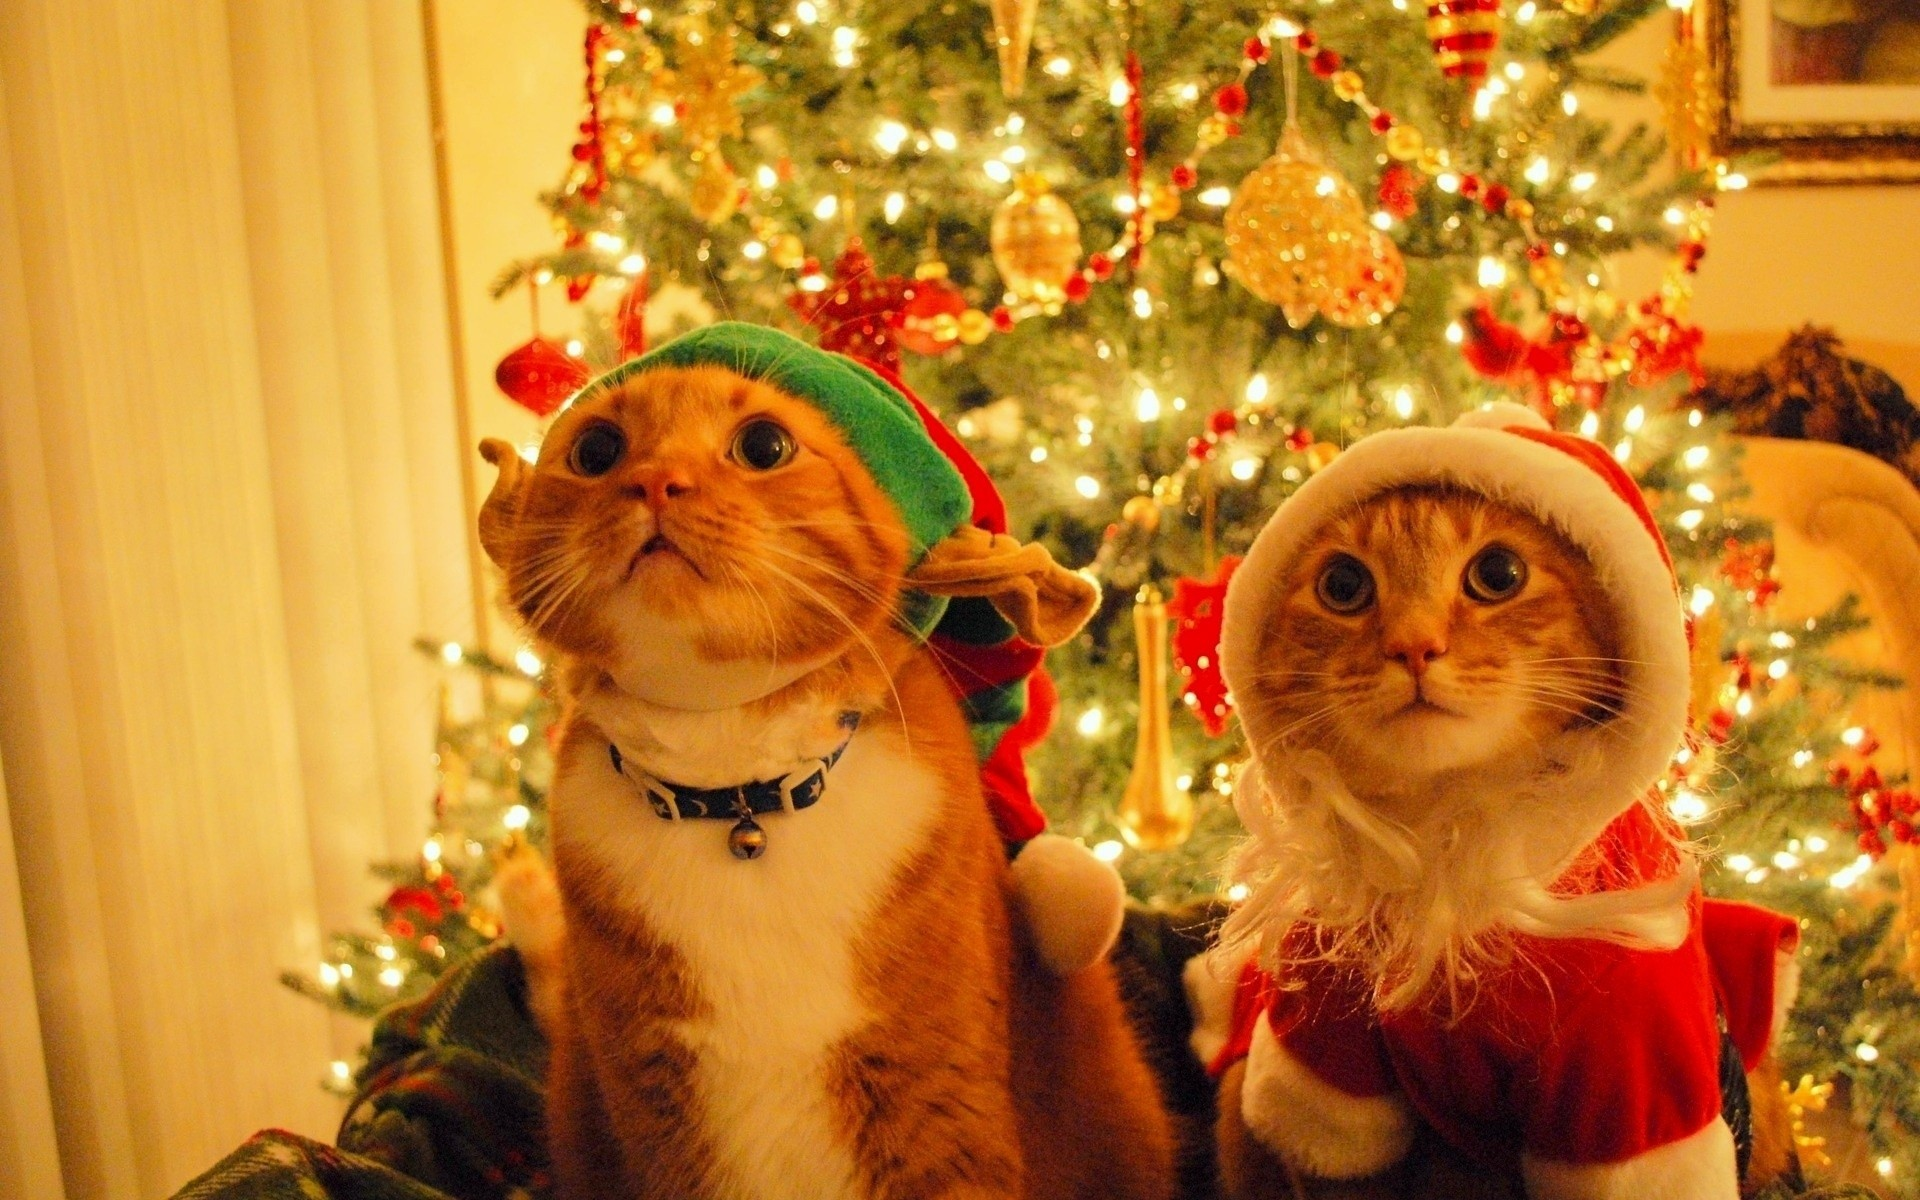 Funny Christmas Desktop Backgrounds 60 Pictures